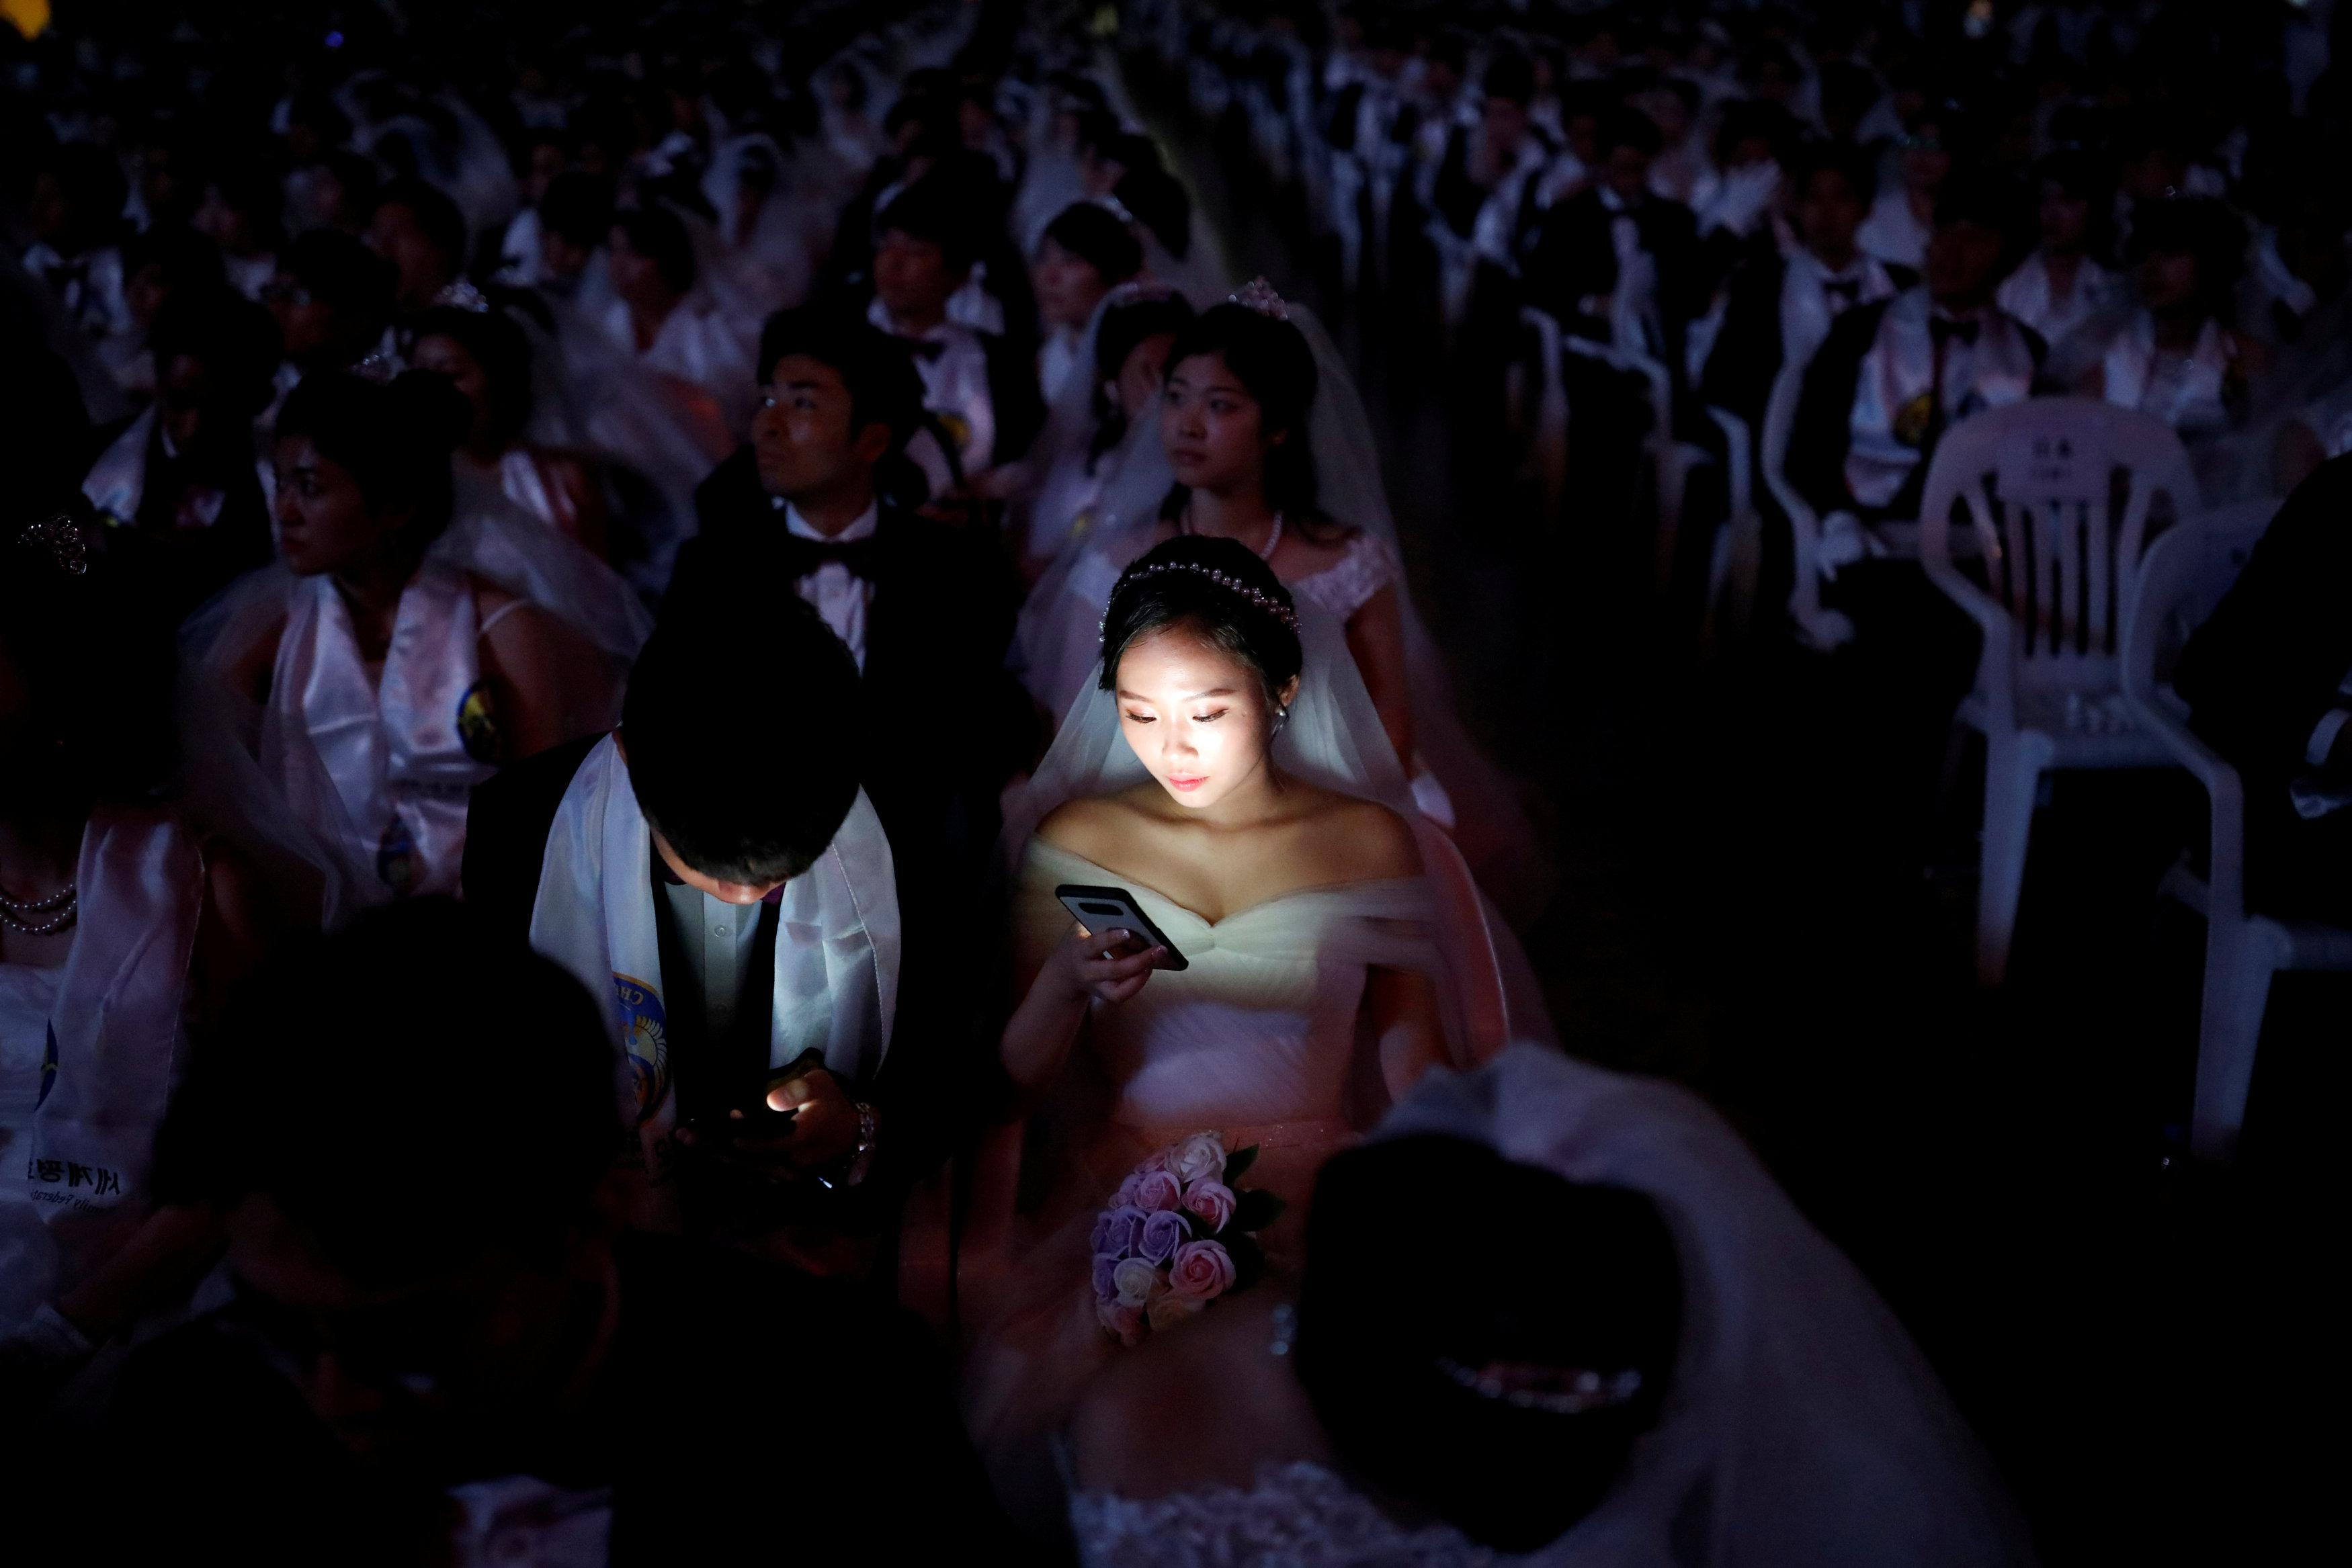 Couples attend a mass wedding ceremony of the Unification Church at Cheongshim Peace World Centre in Gapyeong, South Korea, August 27, 2018.   Kim Hong-Ji